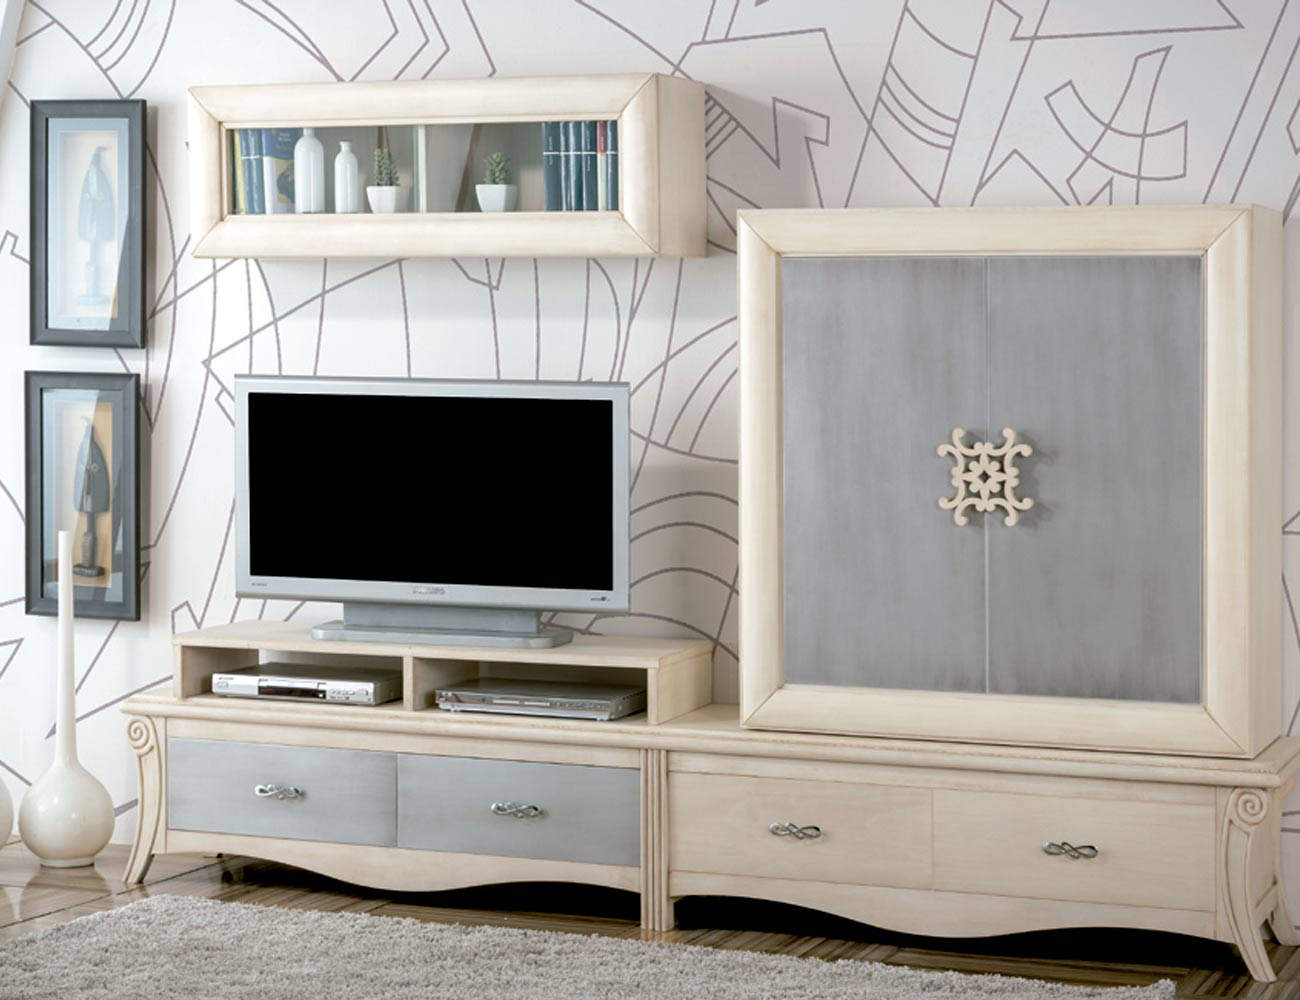 Mueble salon neoclasico color 500 5033